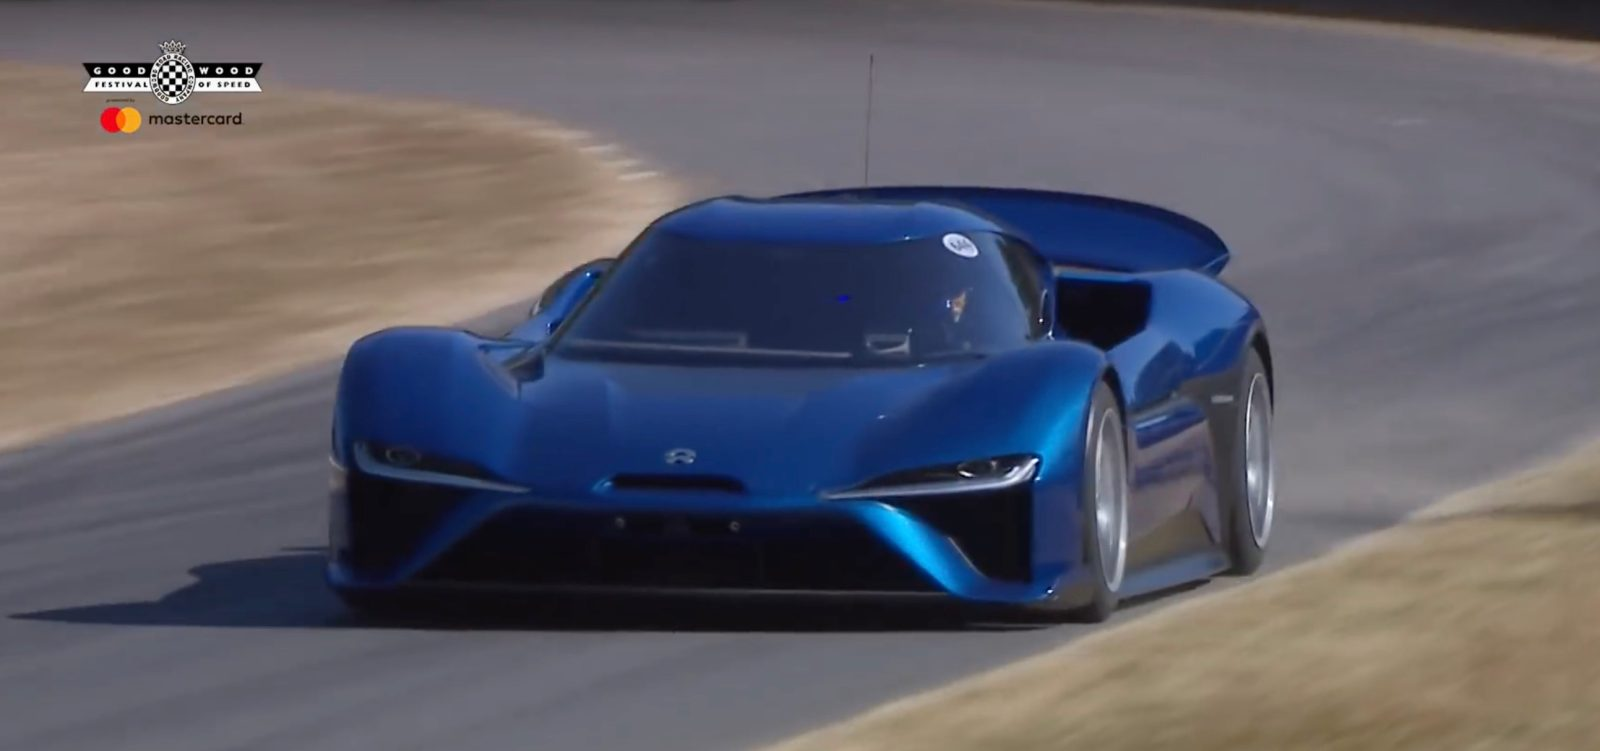 Nio Ep9 And Vw Pikes Peak I D R All Electric Race Cars Took Over Goodwood With New Records